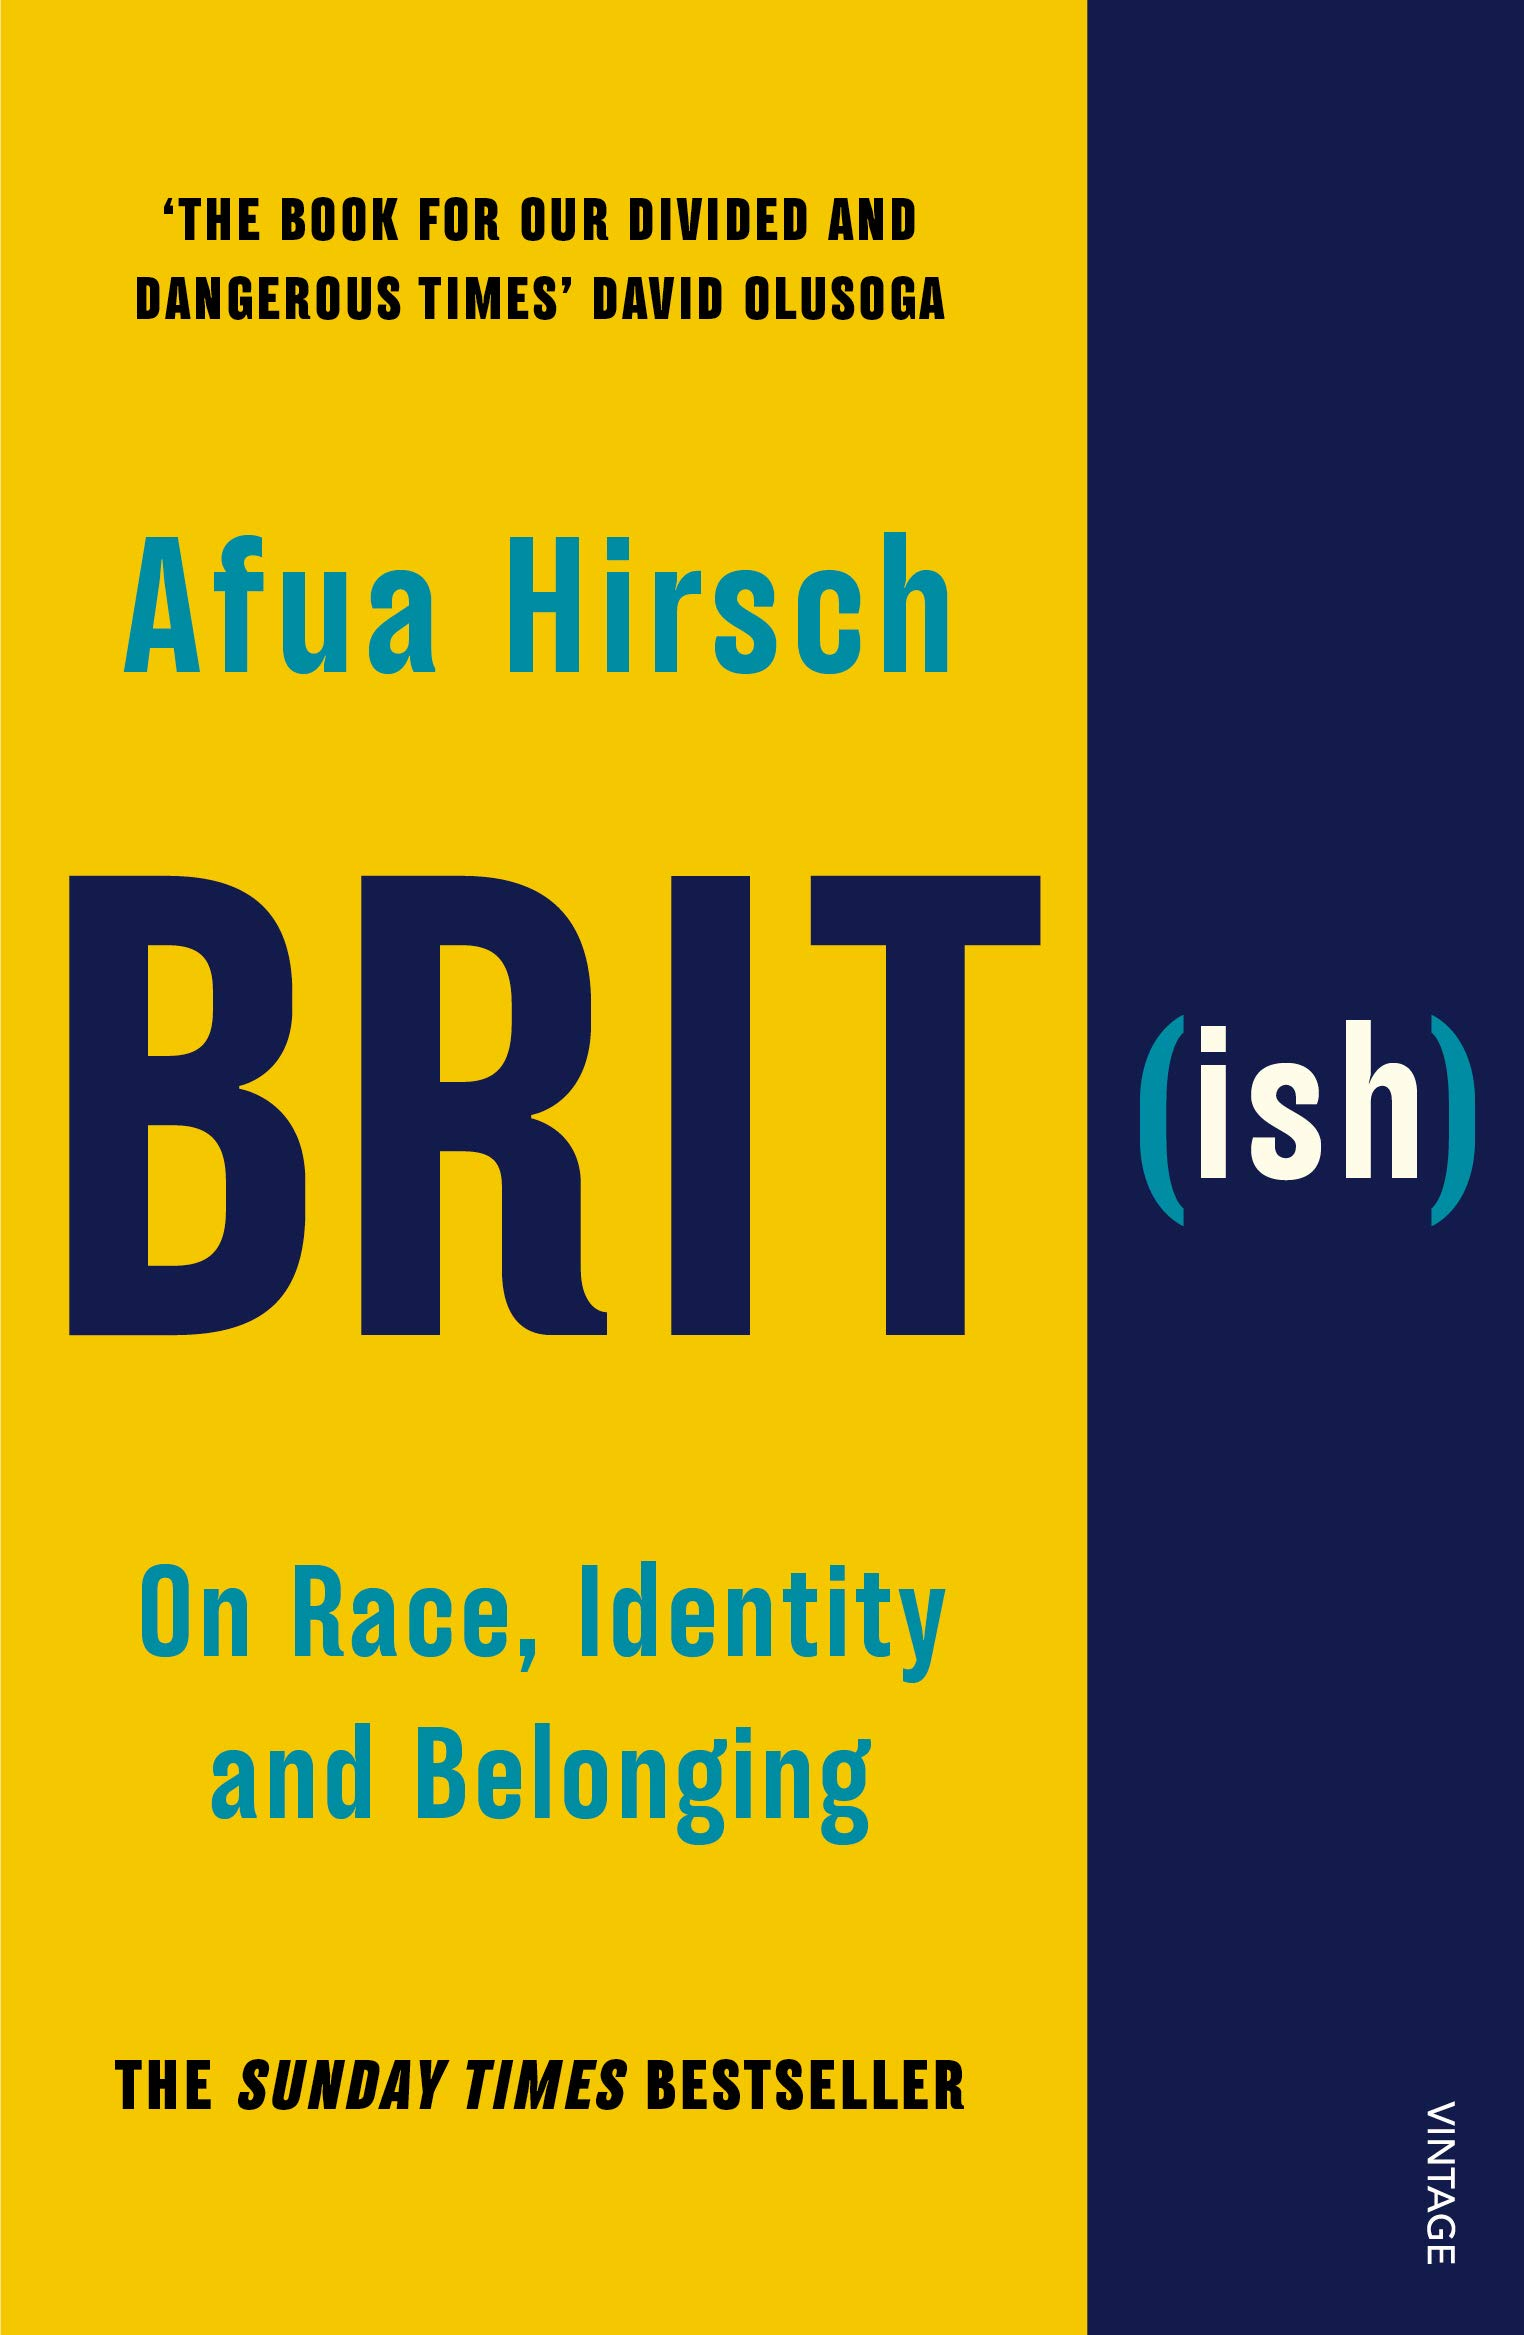 Brit(ish): On Race, Identity and Belonging: Amazon.co.uk: Hirsch, Afua:  9781784705039: Books